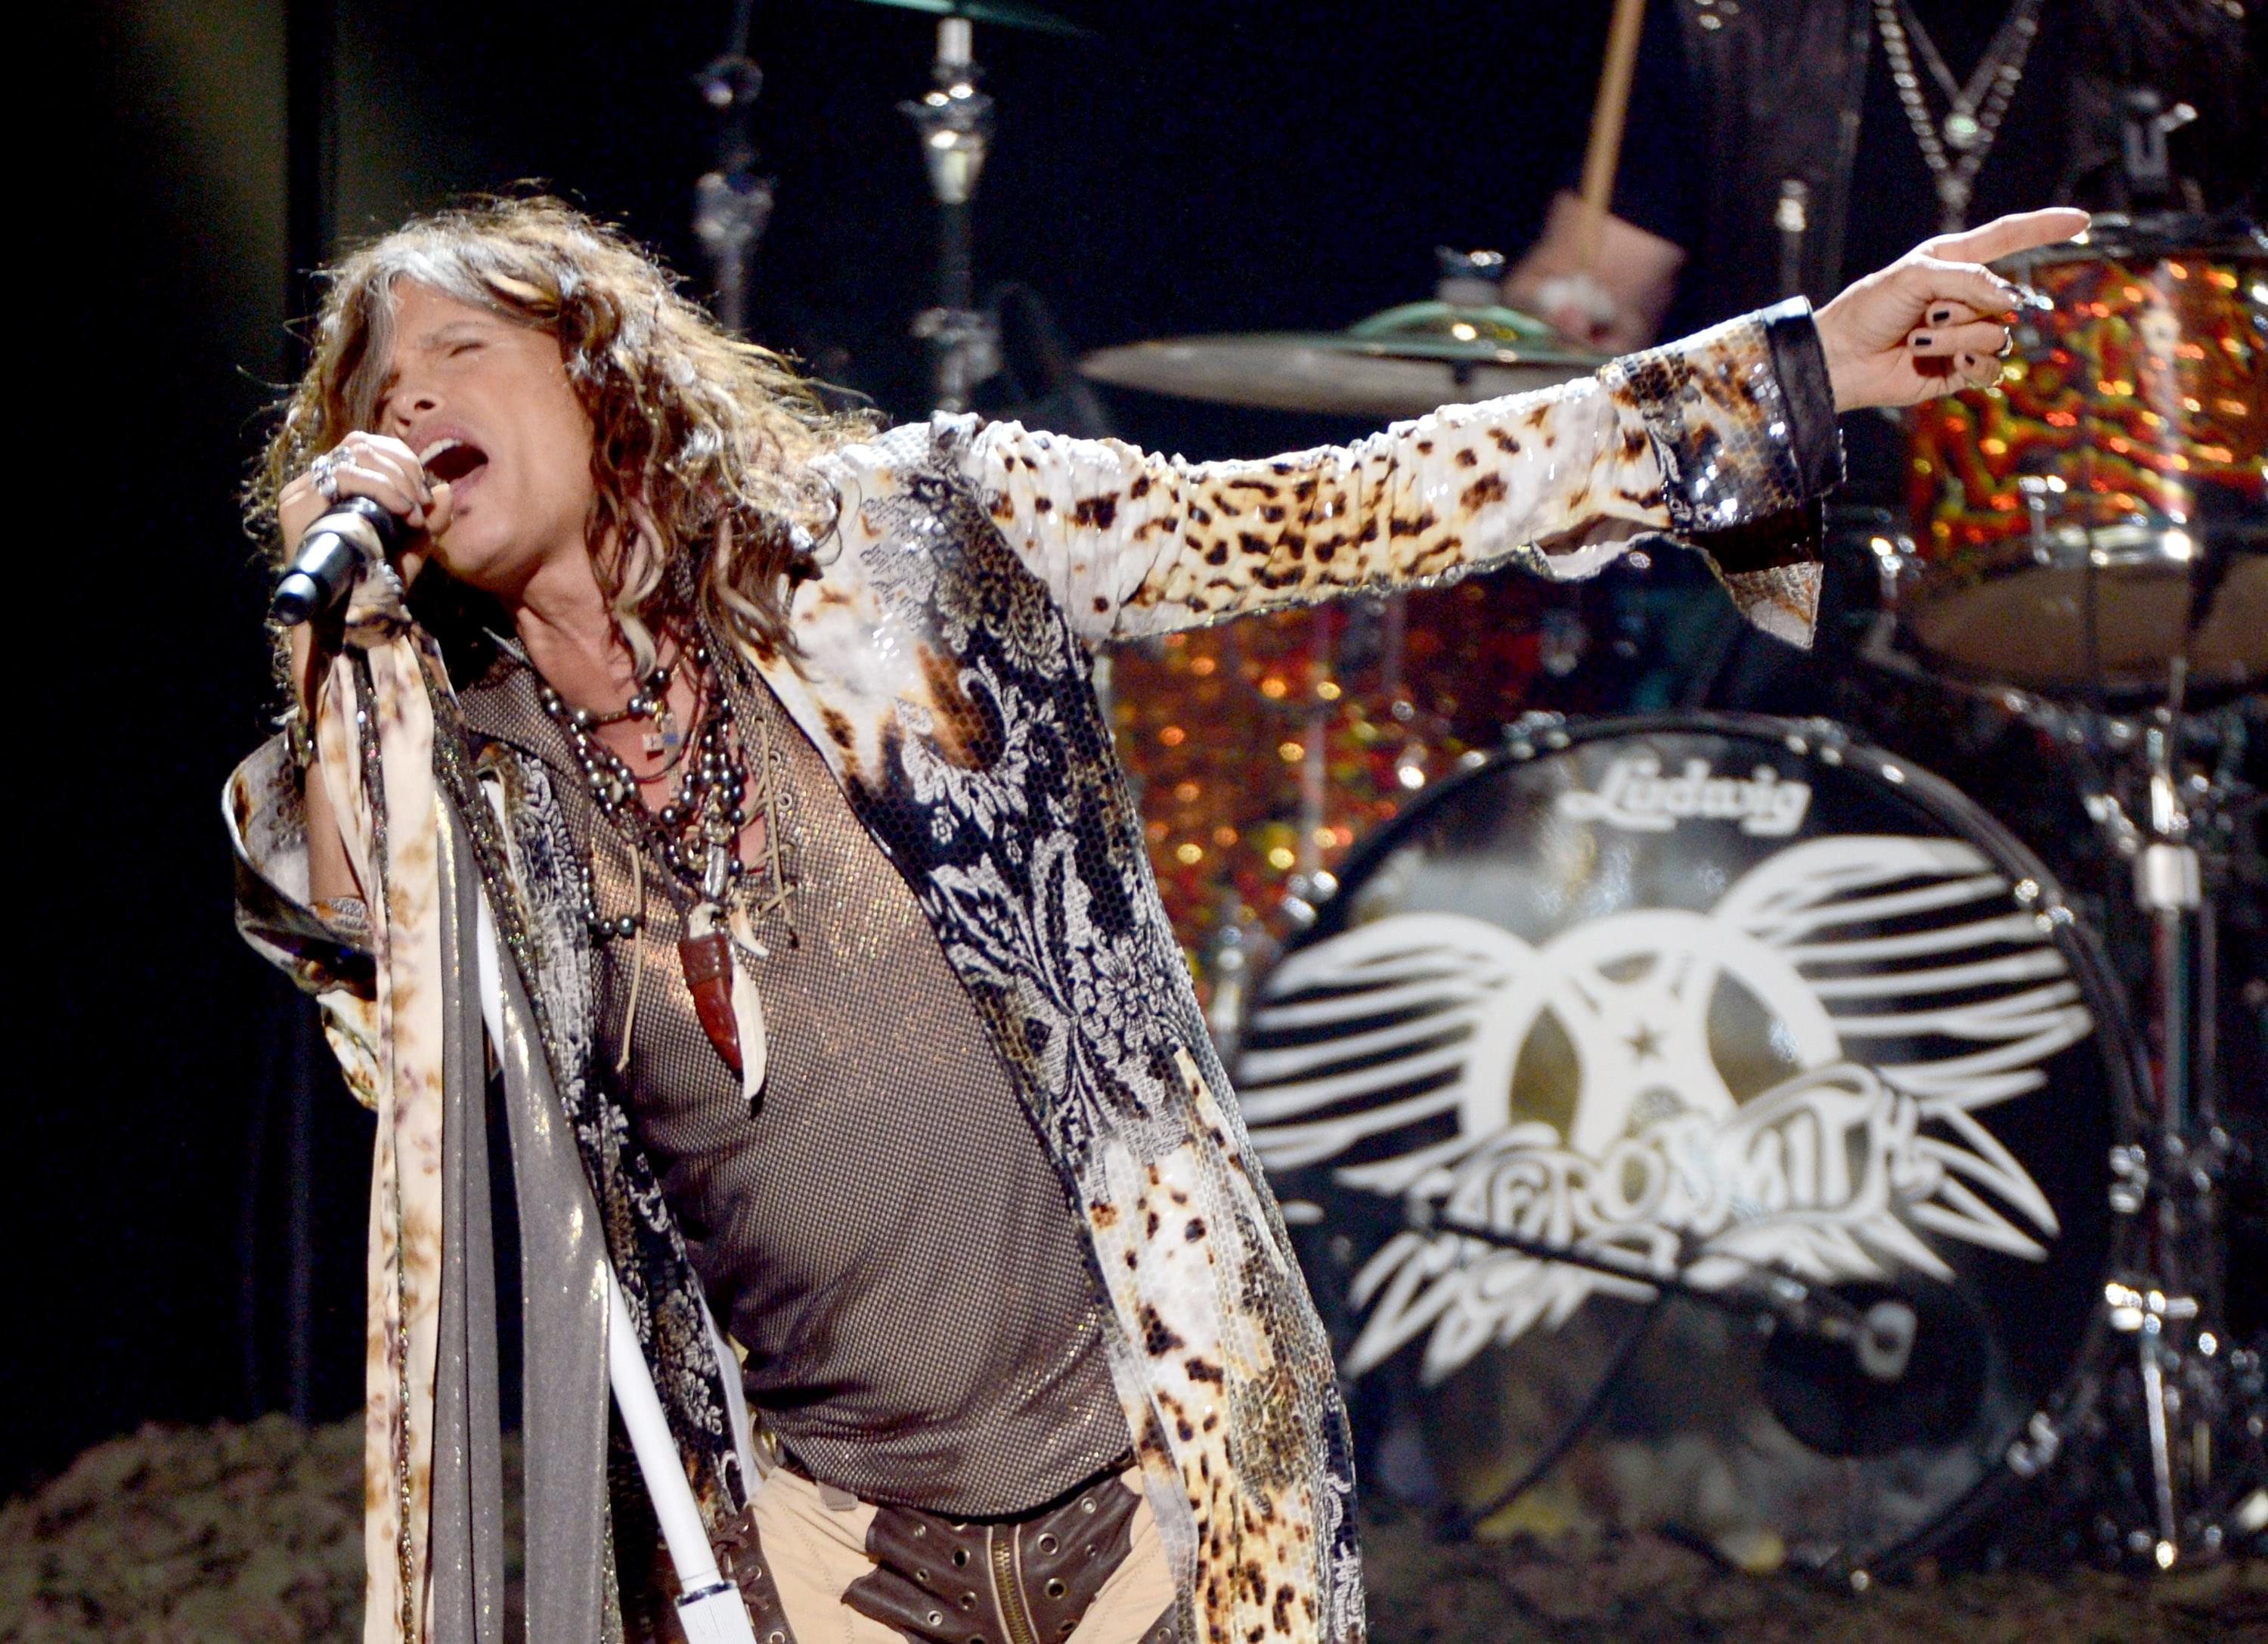 Aerosmith, Guns N' Roses, Motley Crue and more land on 'Best Cover Songs by Rock Bands' list